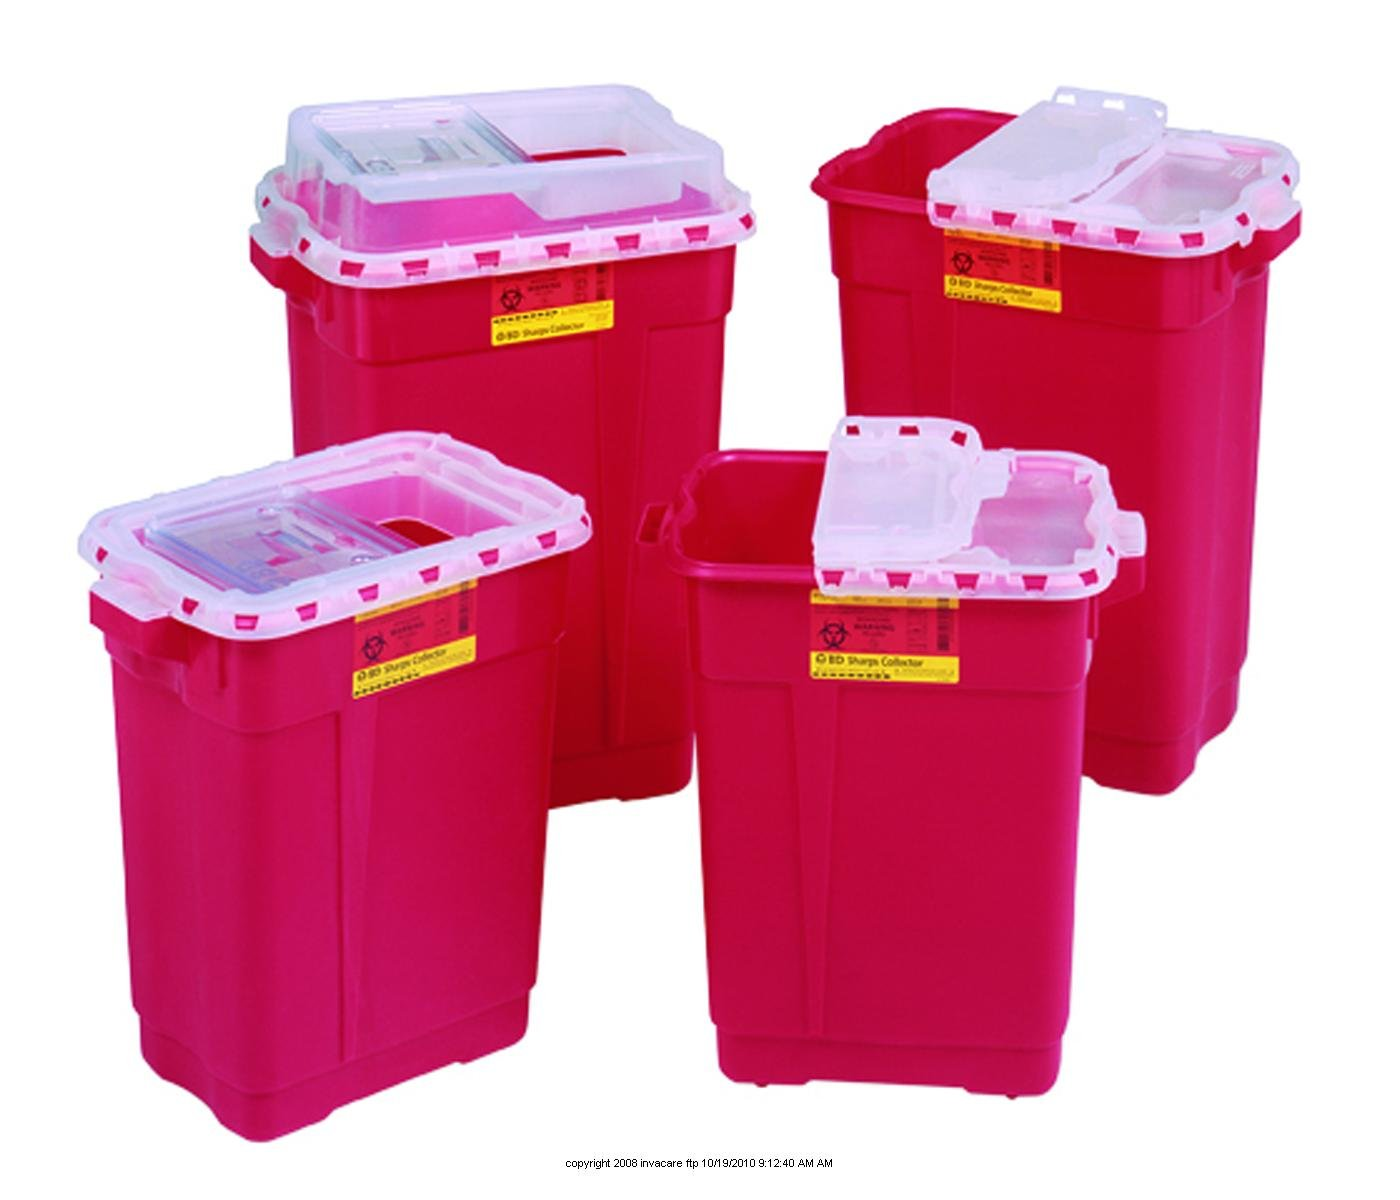 BD Extra Large Regulated Medical Waste Collectors, Sharps Clctr Slg 17 Gal Red, (1 CASE, 5 EACH)